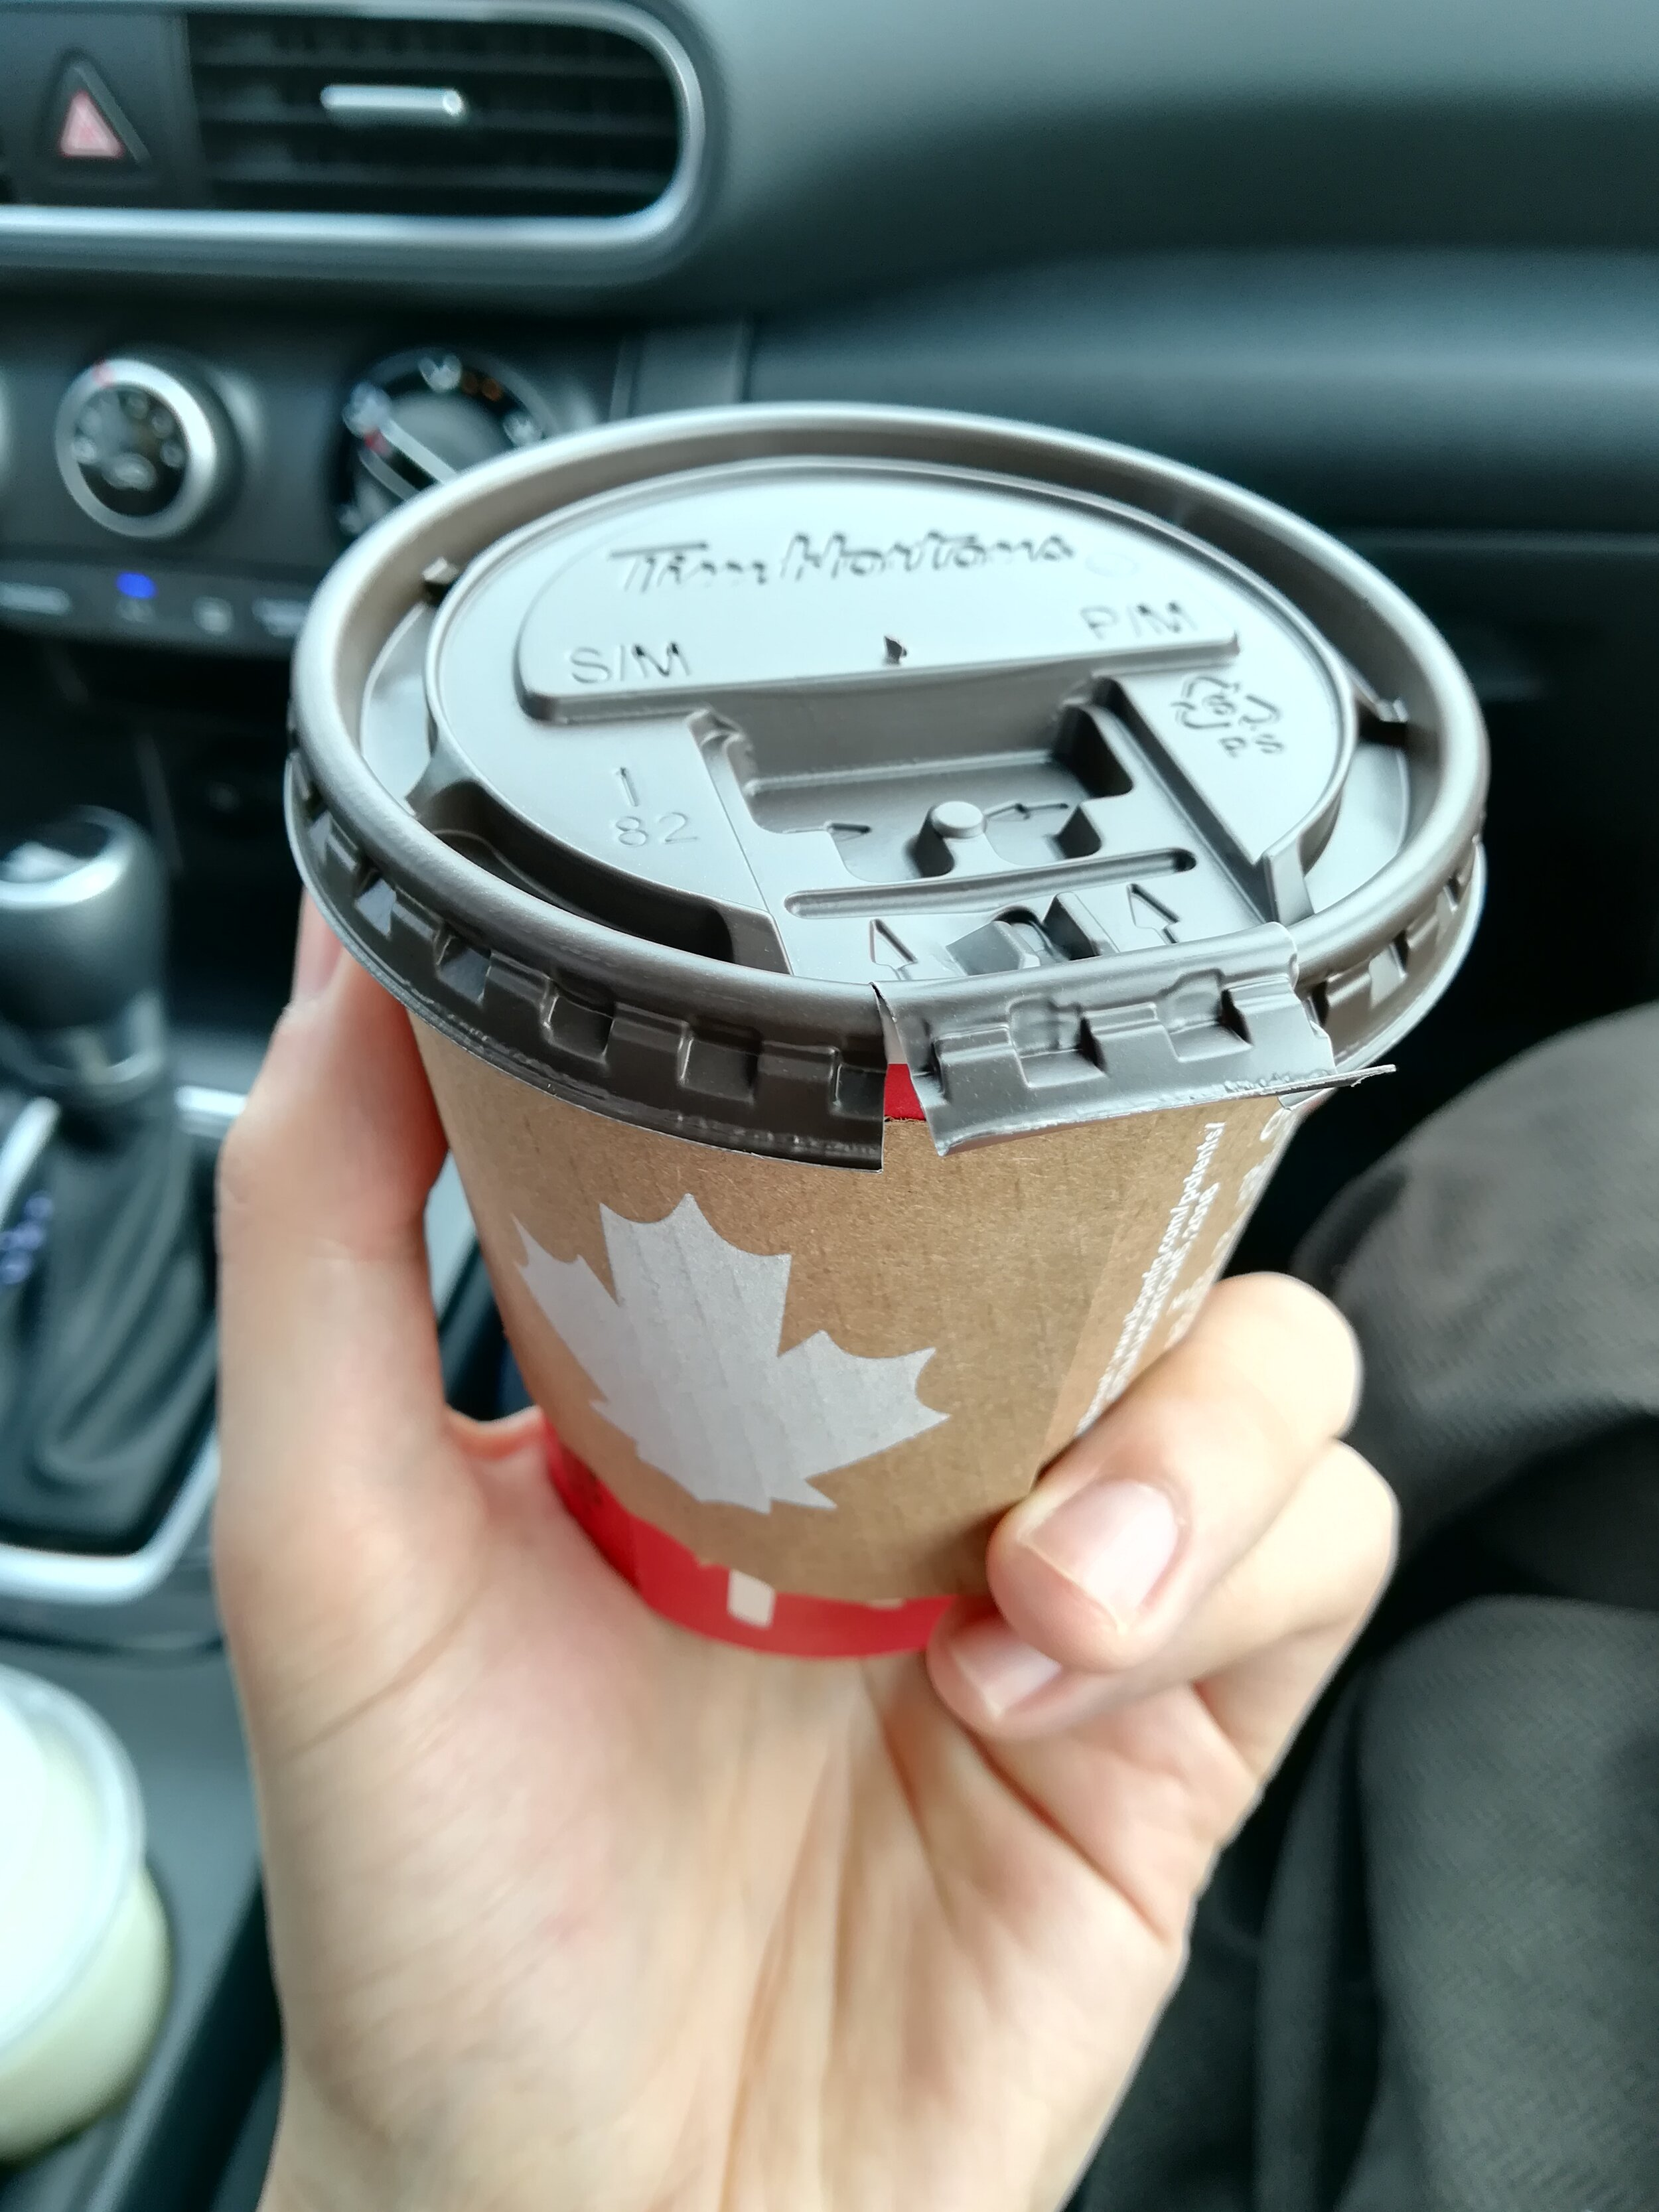 This blog is NOT sponsored by Tim Hortons. I just like the coffee and the food in there.